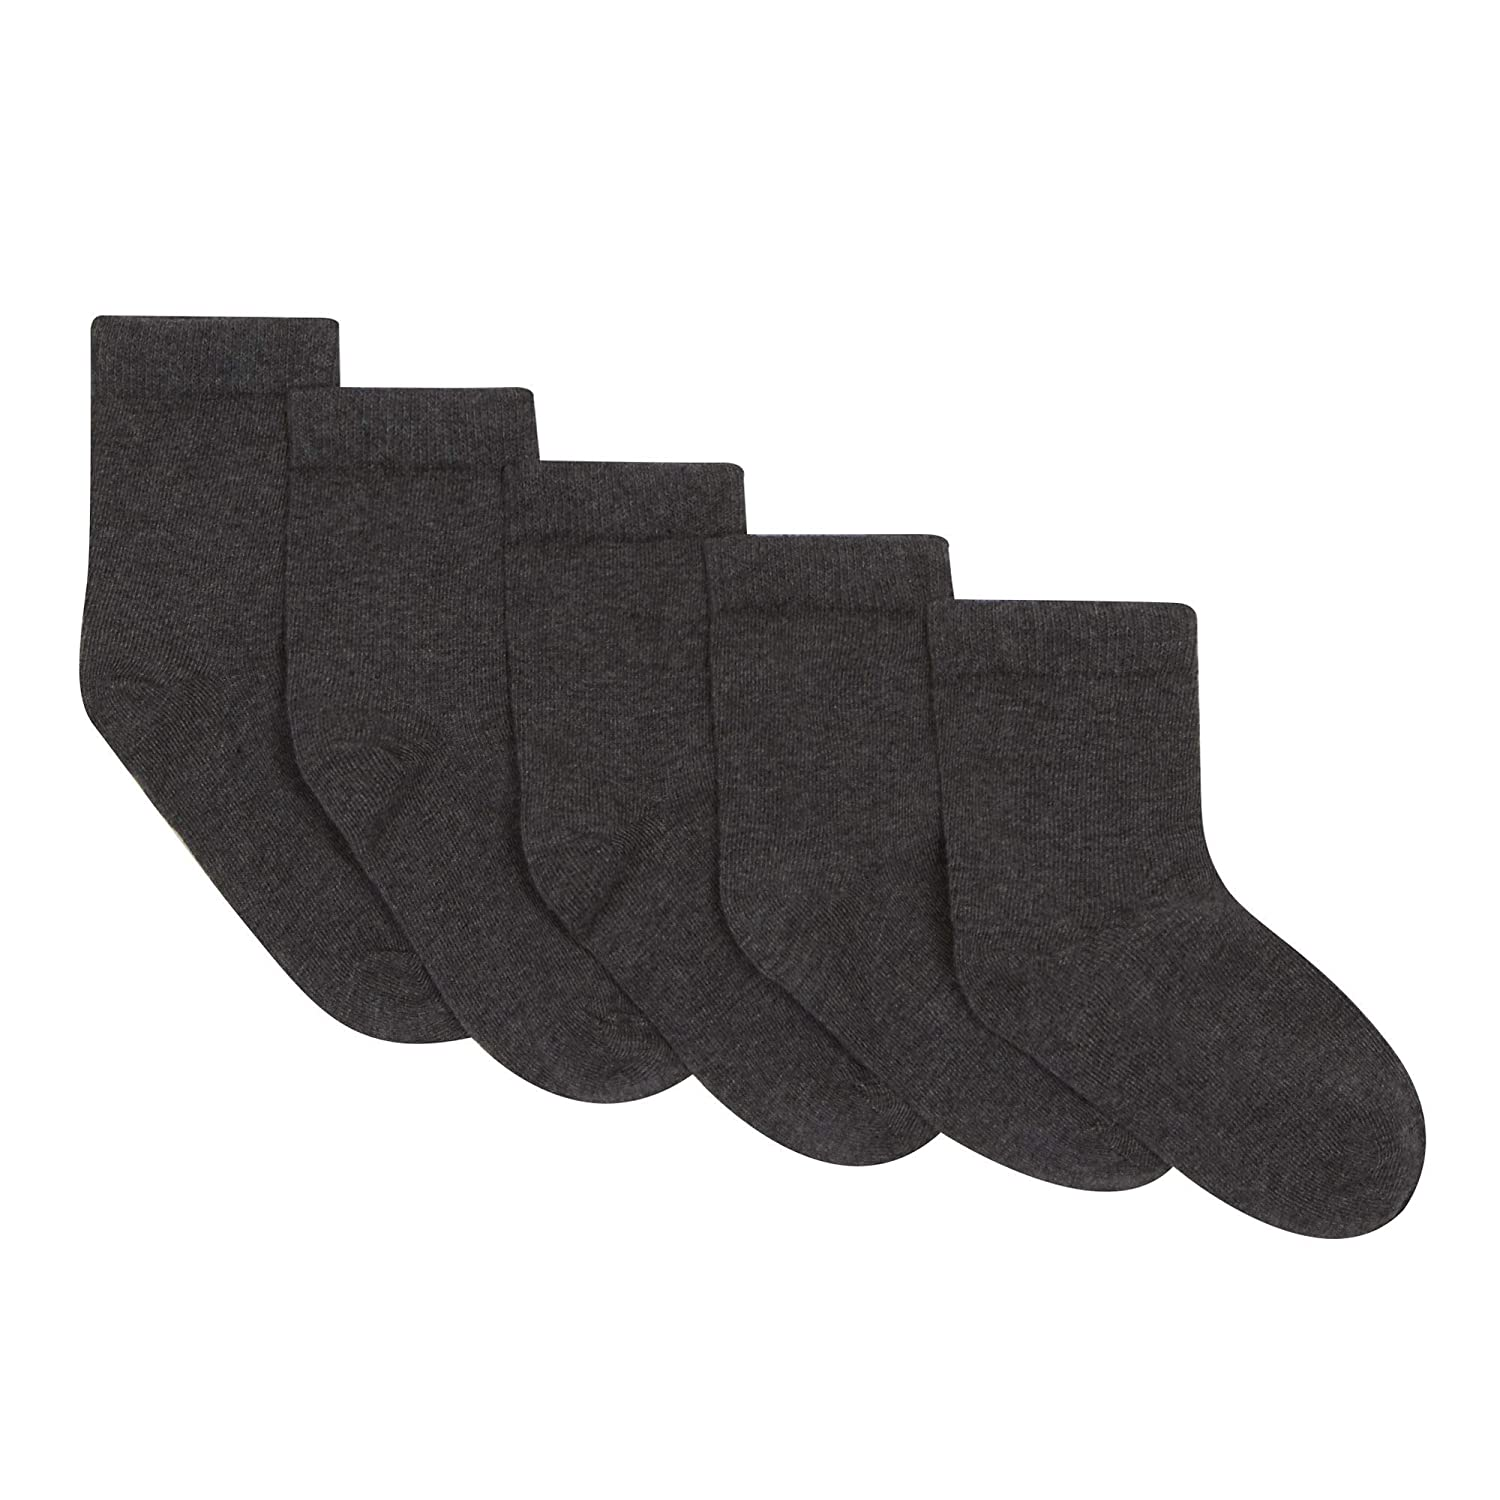 Debenhams Kids 5 Pack Boys' Dark Grey Socks